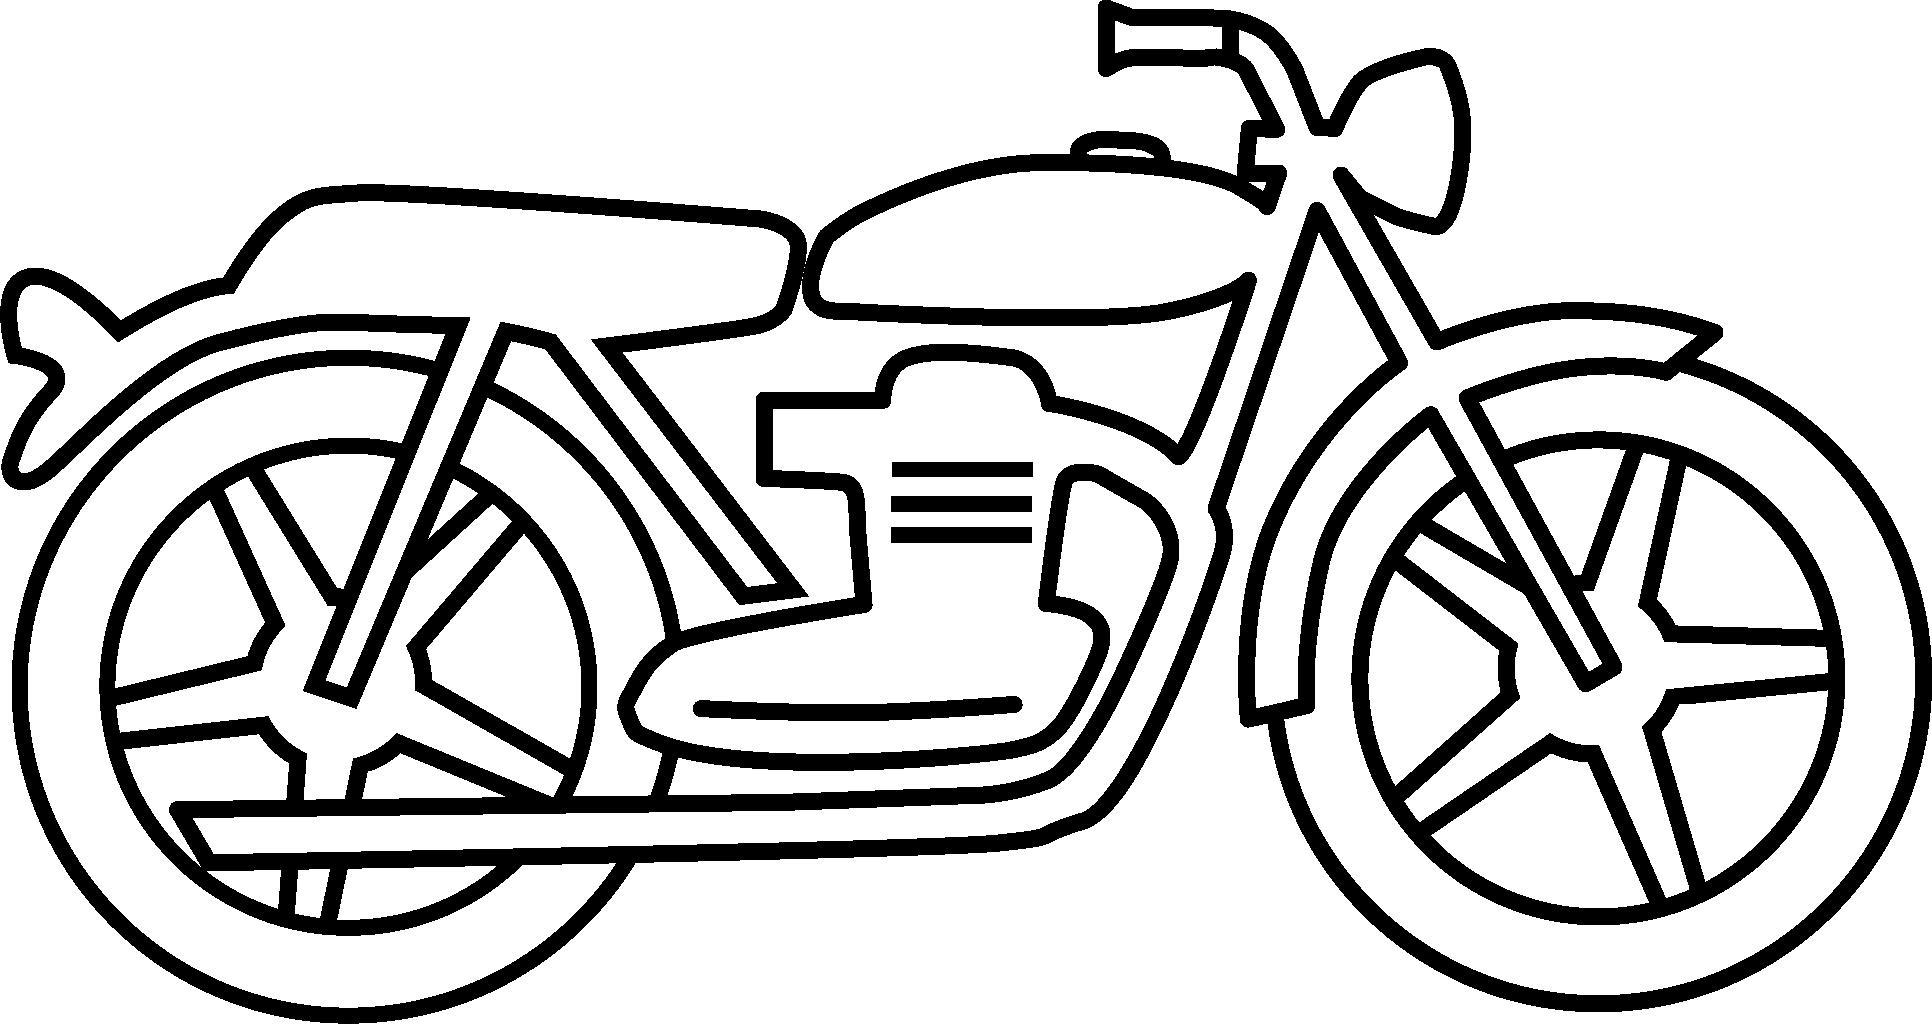 Jpg To Line Drawing : Simple motorcycle clipart panda free